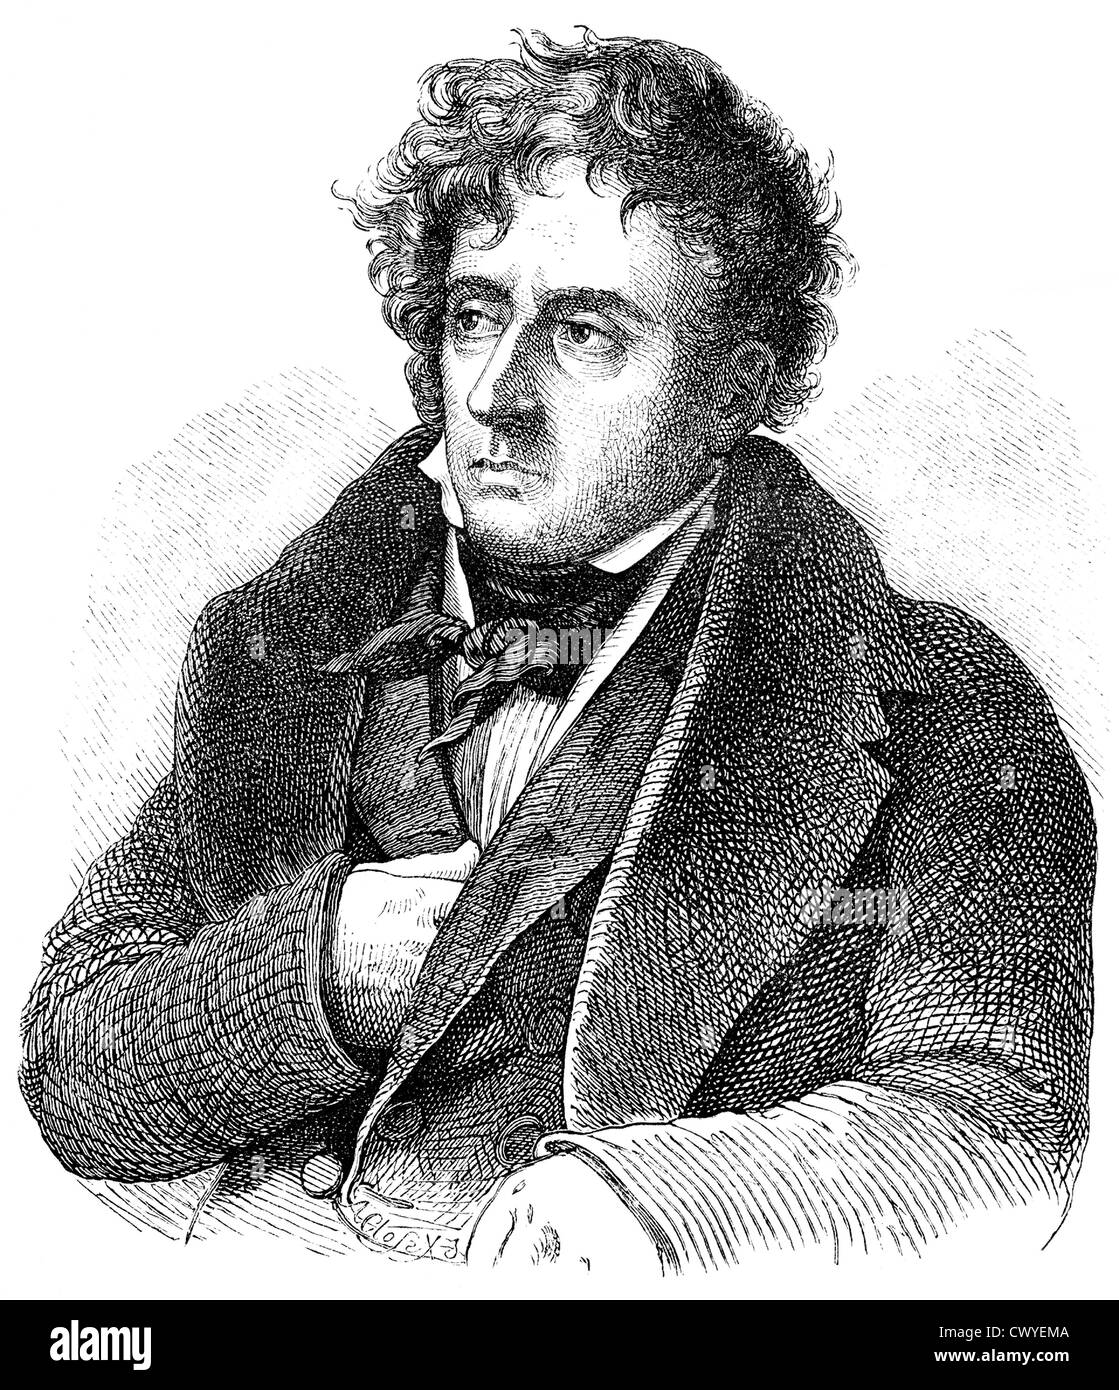 François-René, Vicomte de Chateaubriand, 1768 - 1848, a French writer, politician and diplomat, - Stock Image